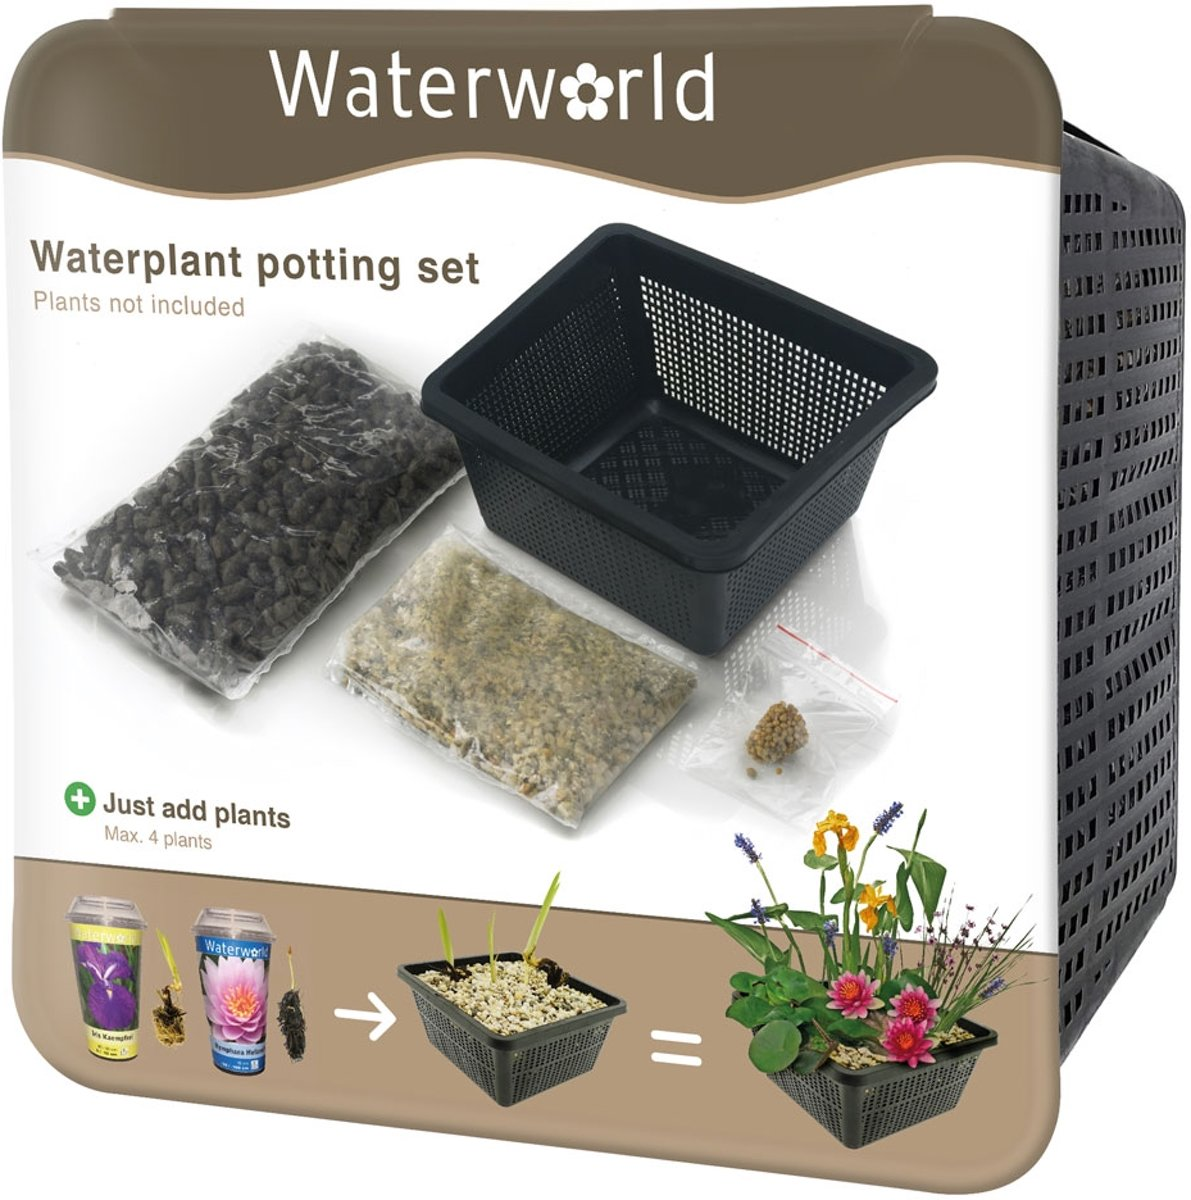 Waterworld® Aqua Set - Waterplanten Oppot Set